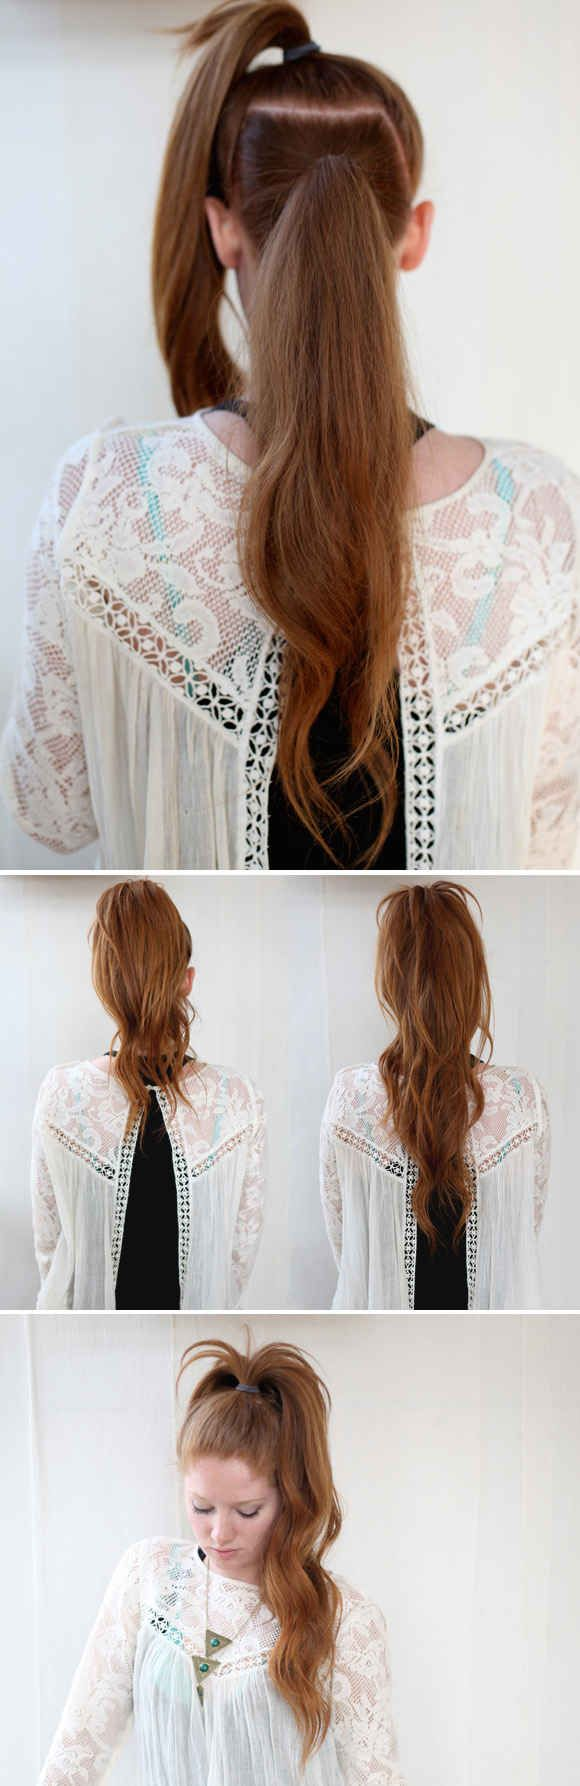 زفاف - 23 Five-Minute Hairstyles For Busy Mornings